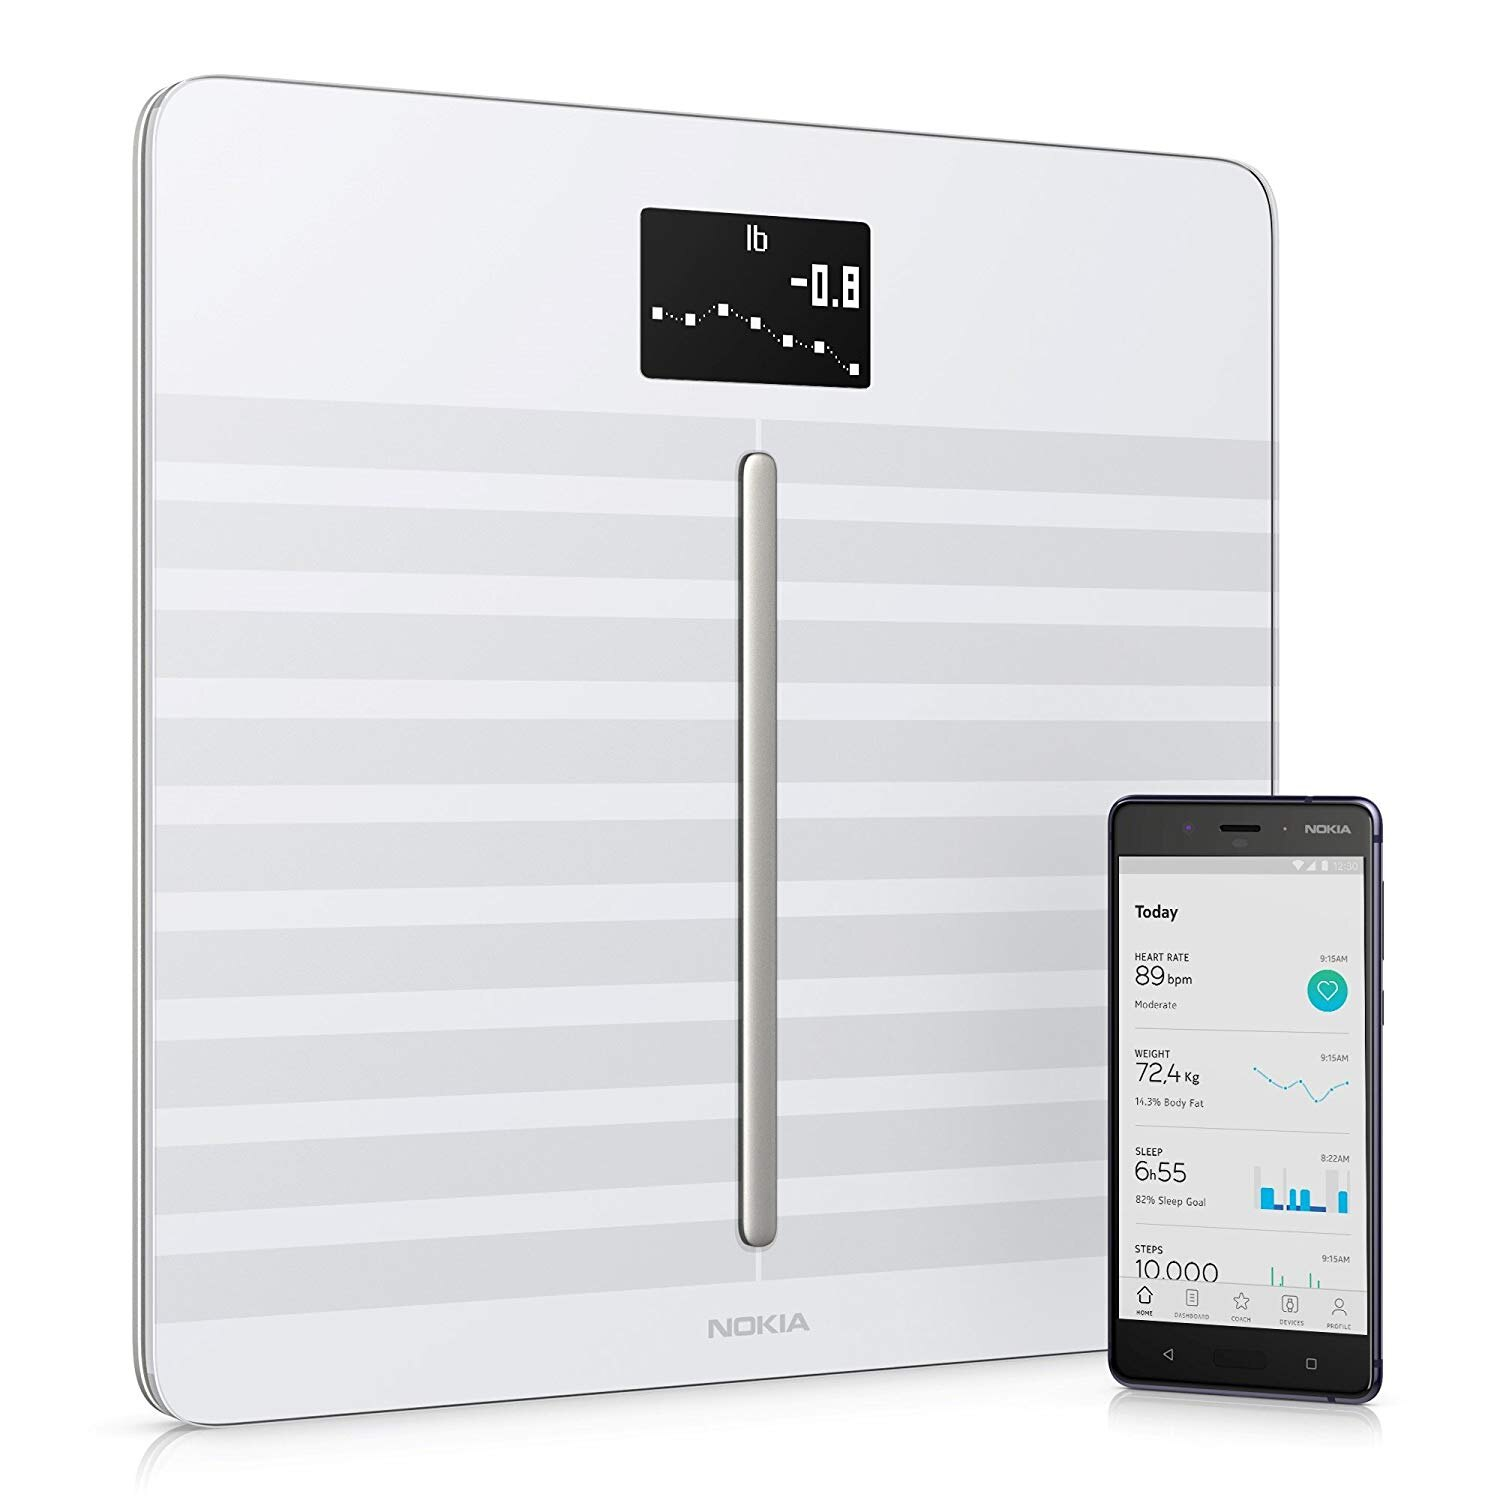 Nokia Body Cardio Wi-Fi Smart Scale with Body Composition and Heart Rate - White 0